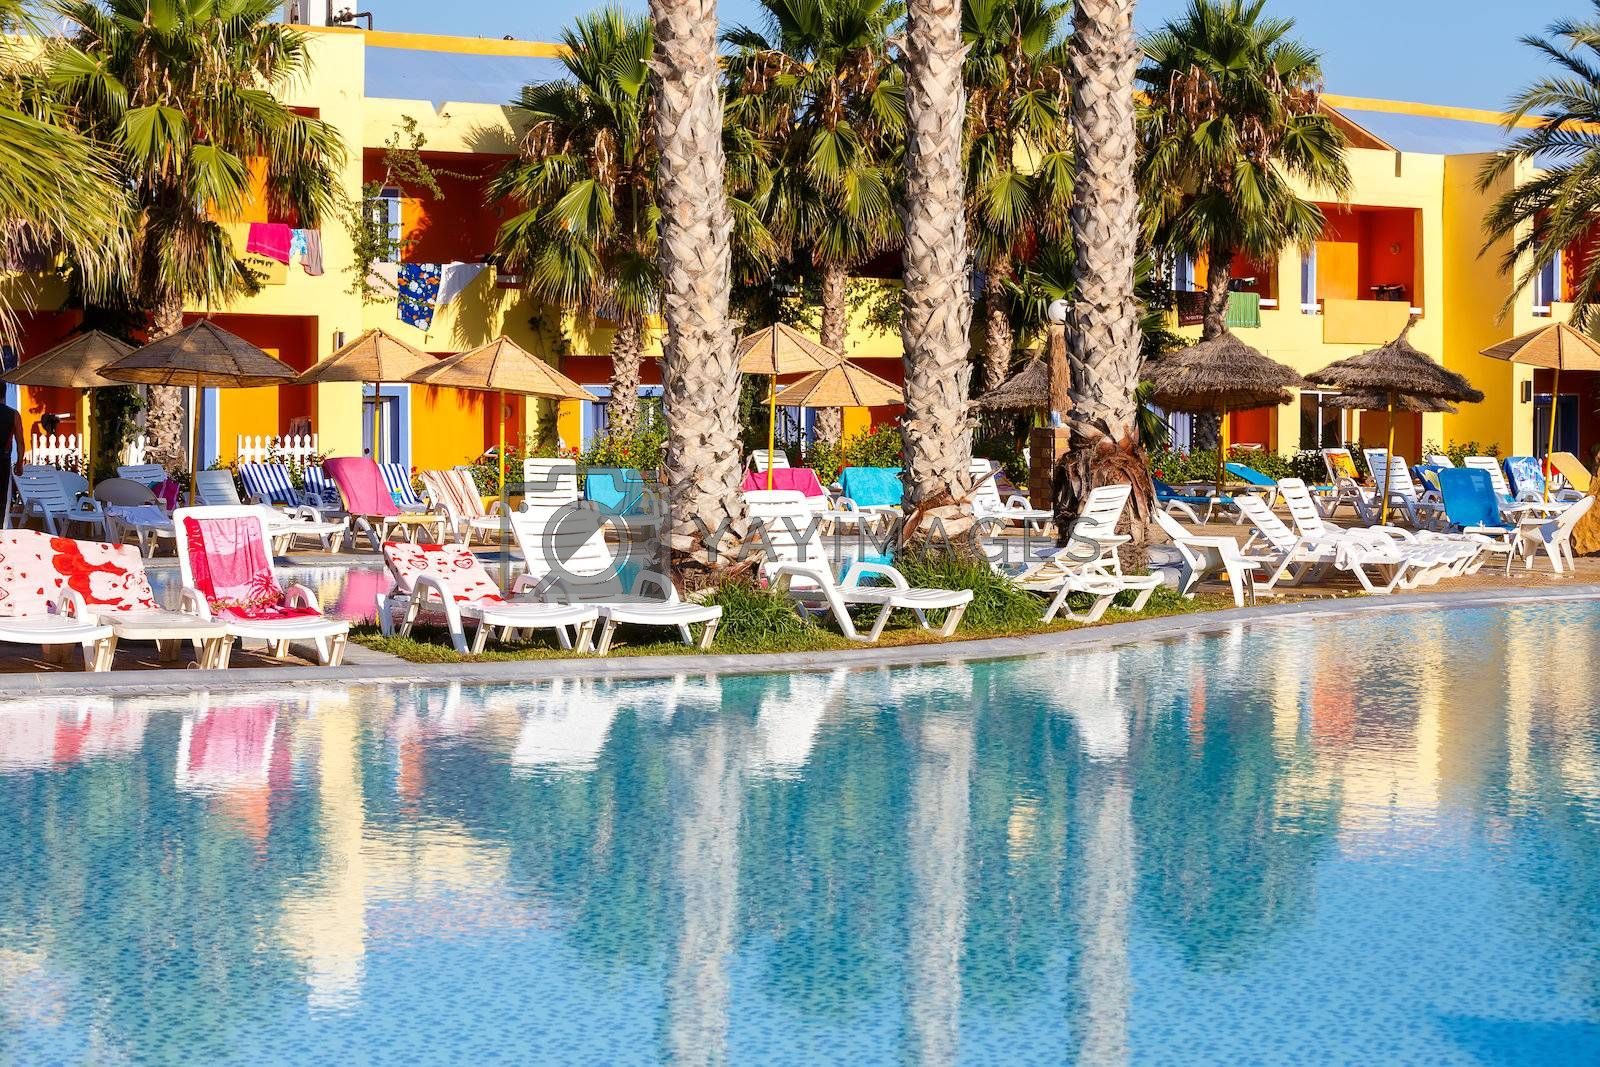 Royalty free image of sunloungers on swimming pool  by artush